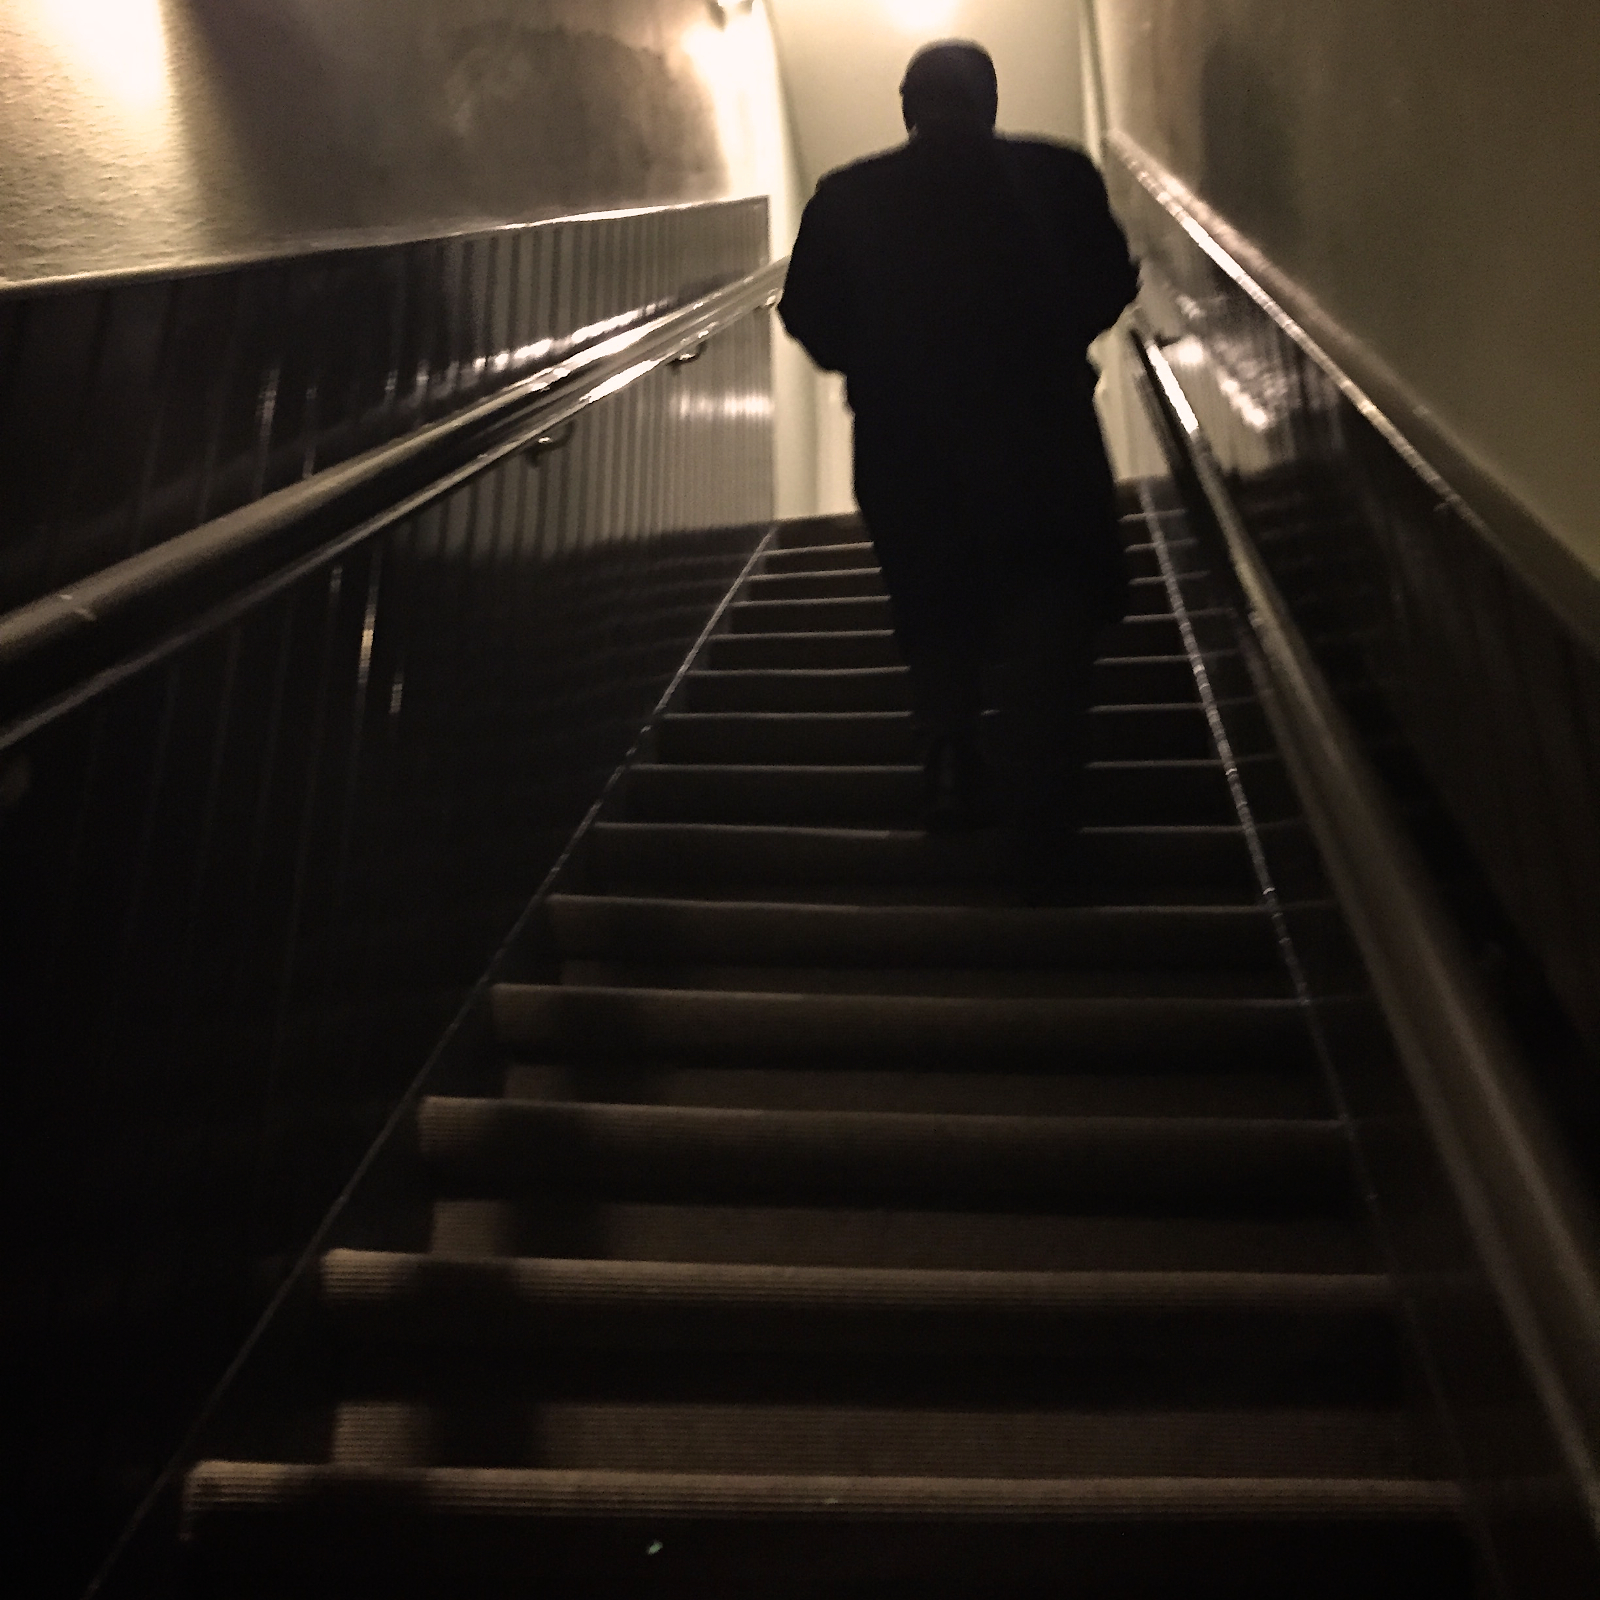 I would not want to attempt these stairs drunk.